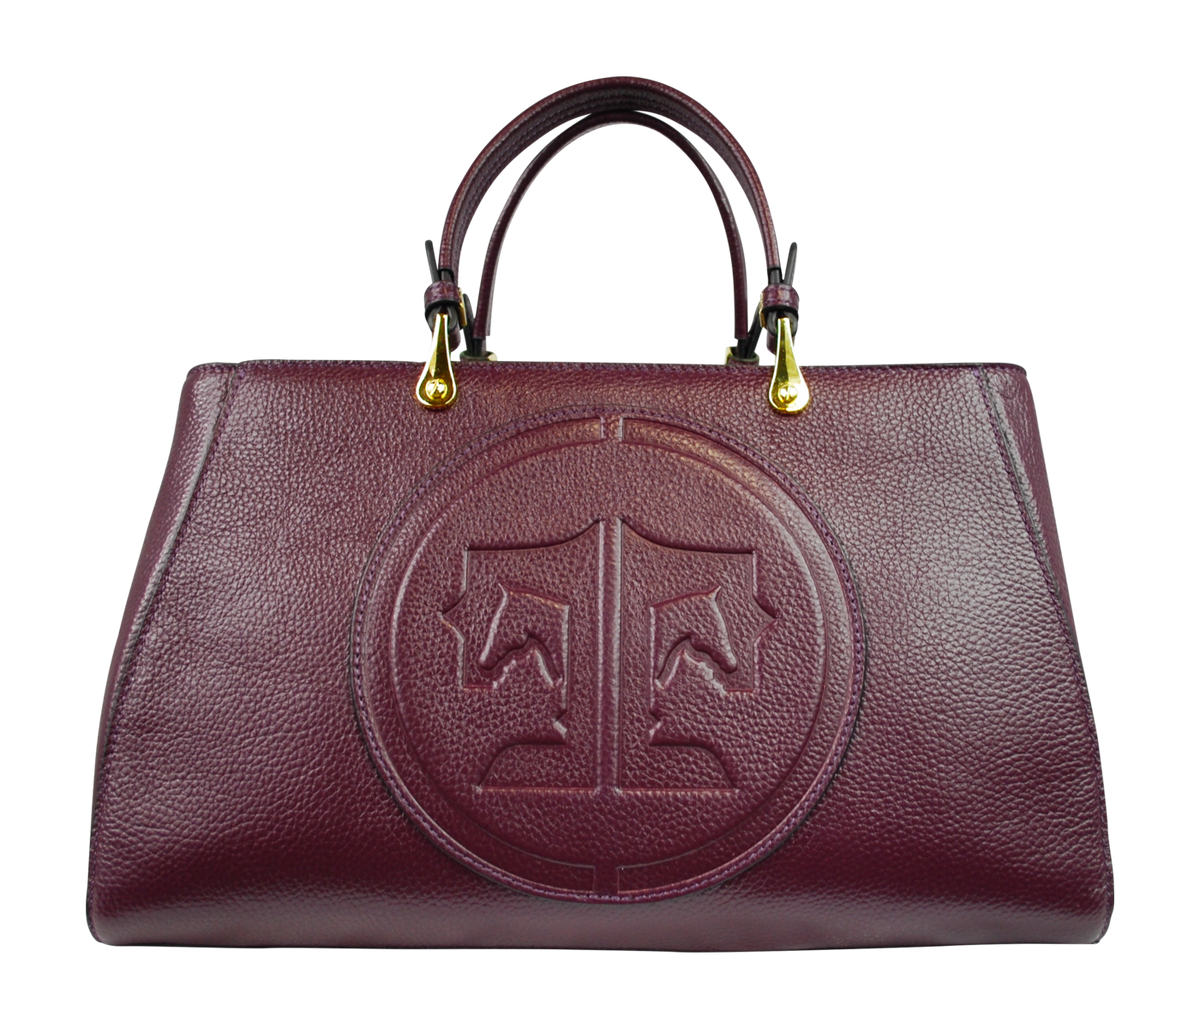 Tucker Tweed Leather Handbags Mulberry / Signature Sedgefield Legacy: Signature